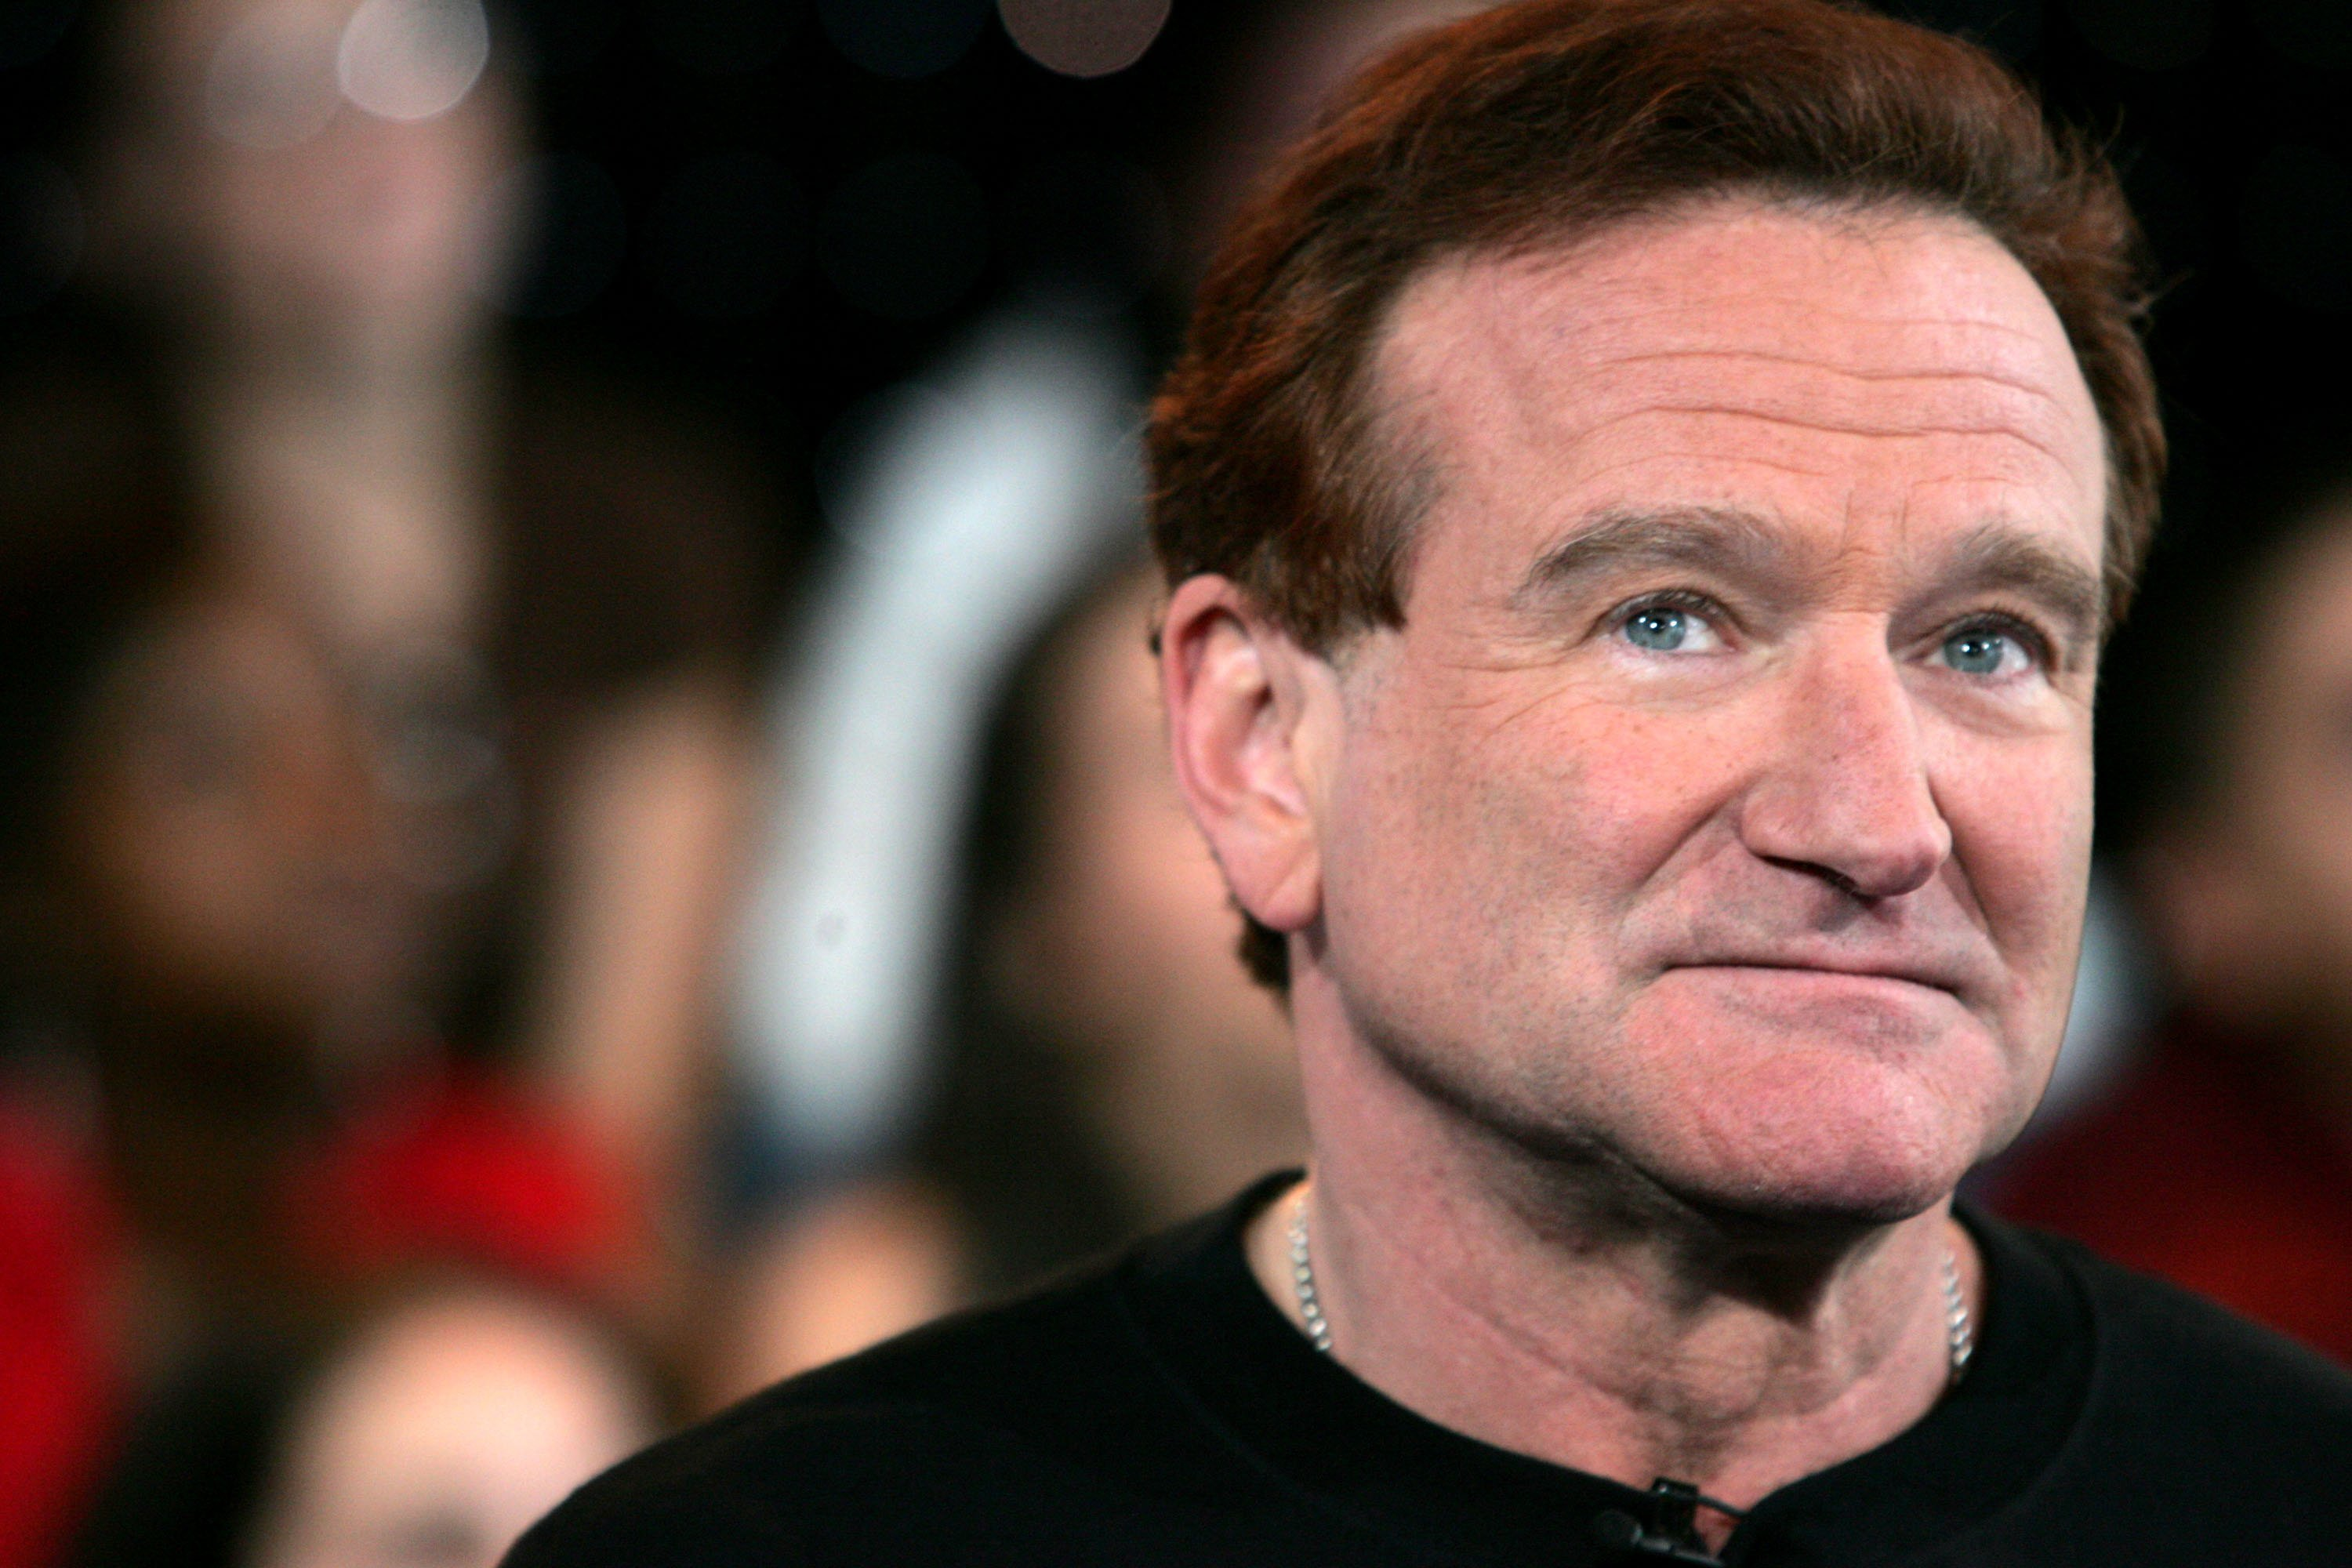 Image Credits: Getty Images / Peter Kramer | Actor Robin Williams appears onstage during MTV's Total Request Live at the MTV Times Square Studios on April 27, 2006 in New York City.